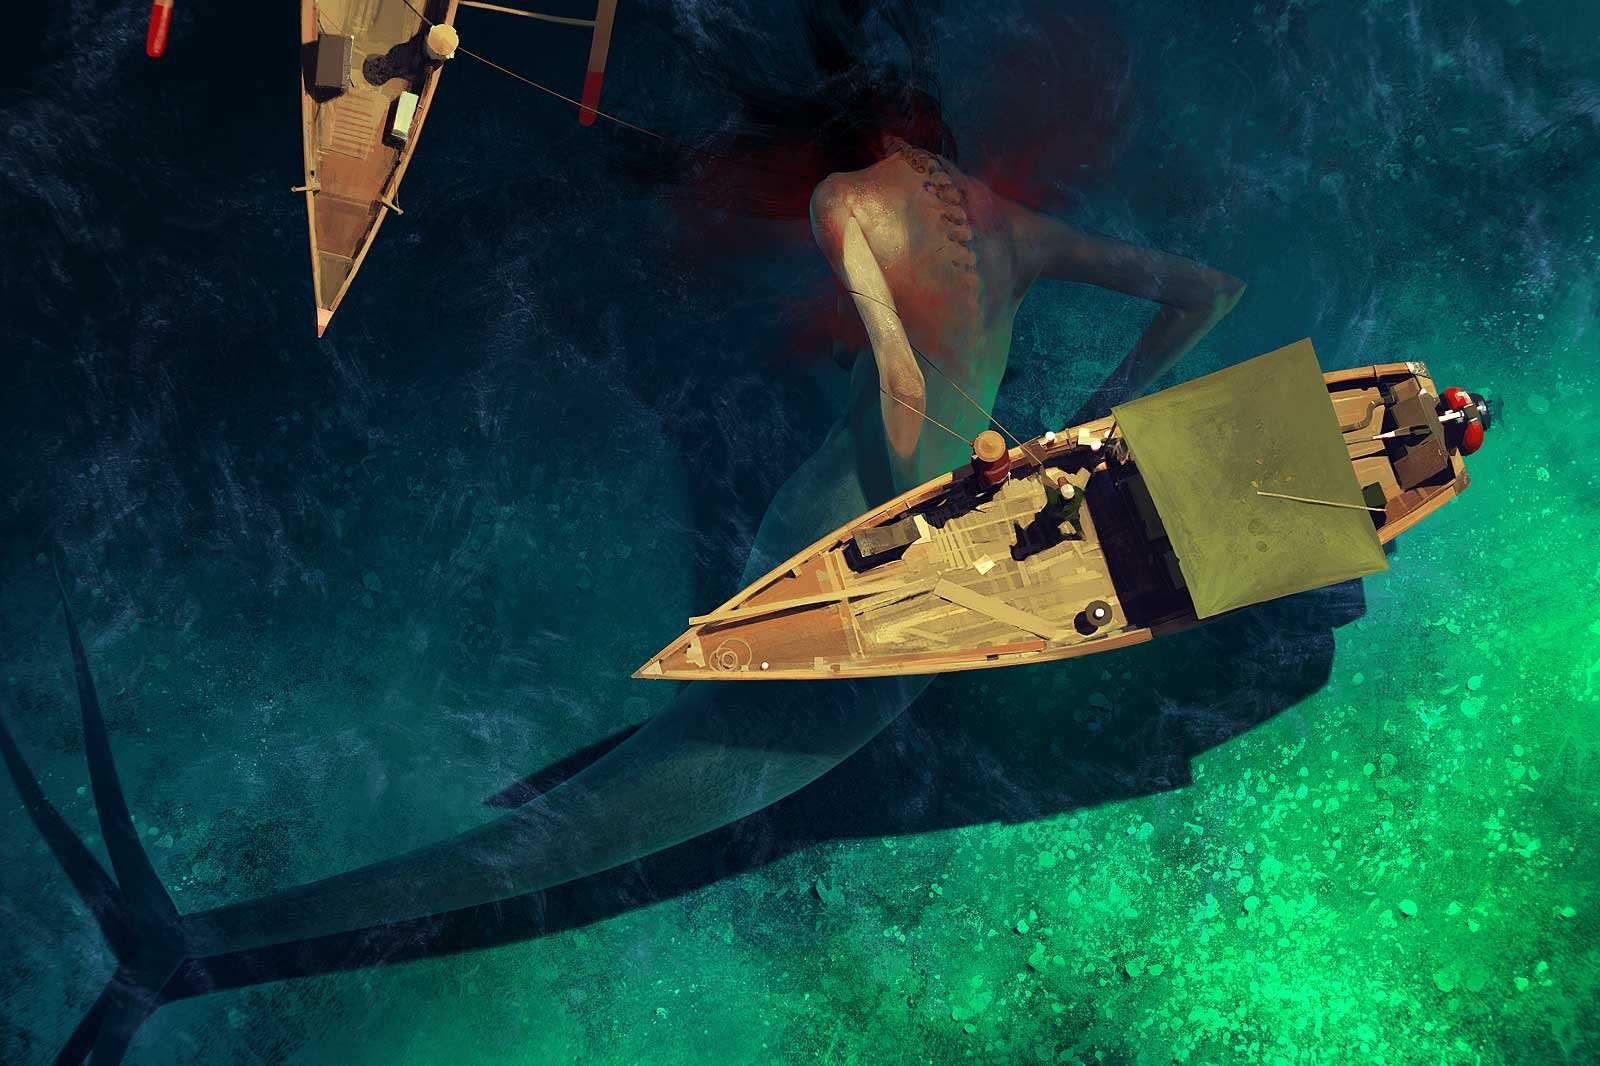 sergey-kolesov-mermaid-sharpen.jpg